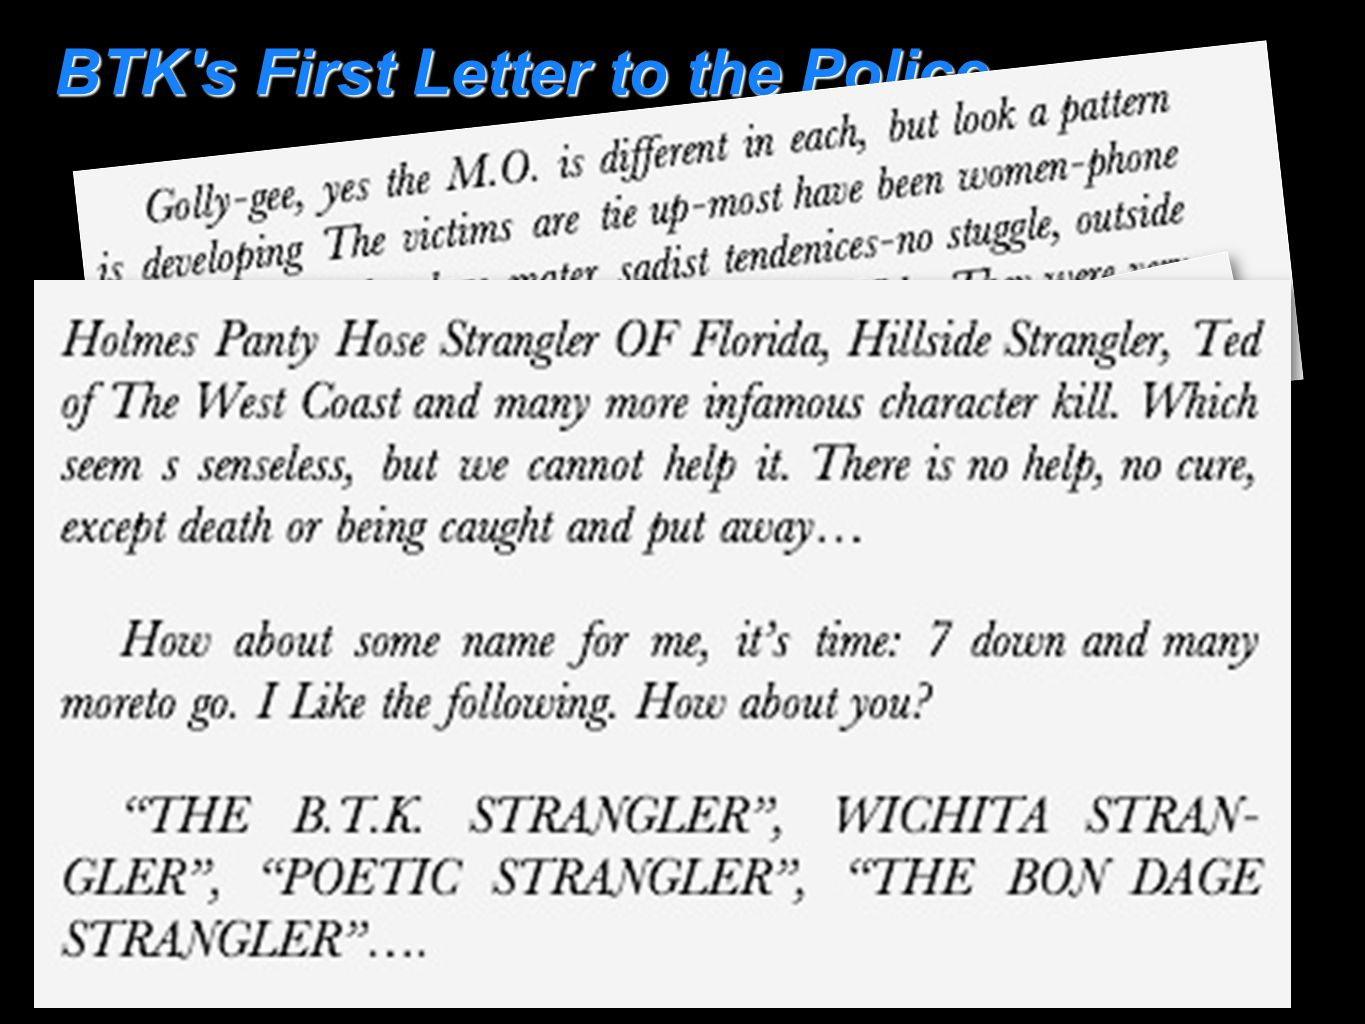 BTK's First Letter to the Police